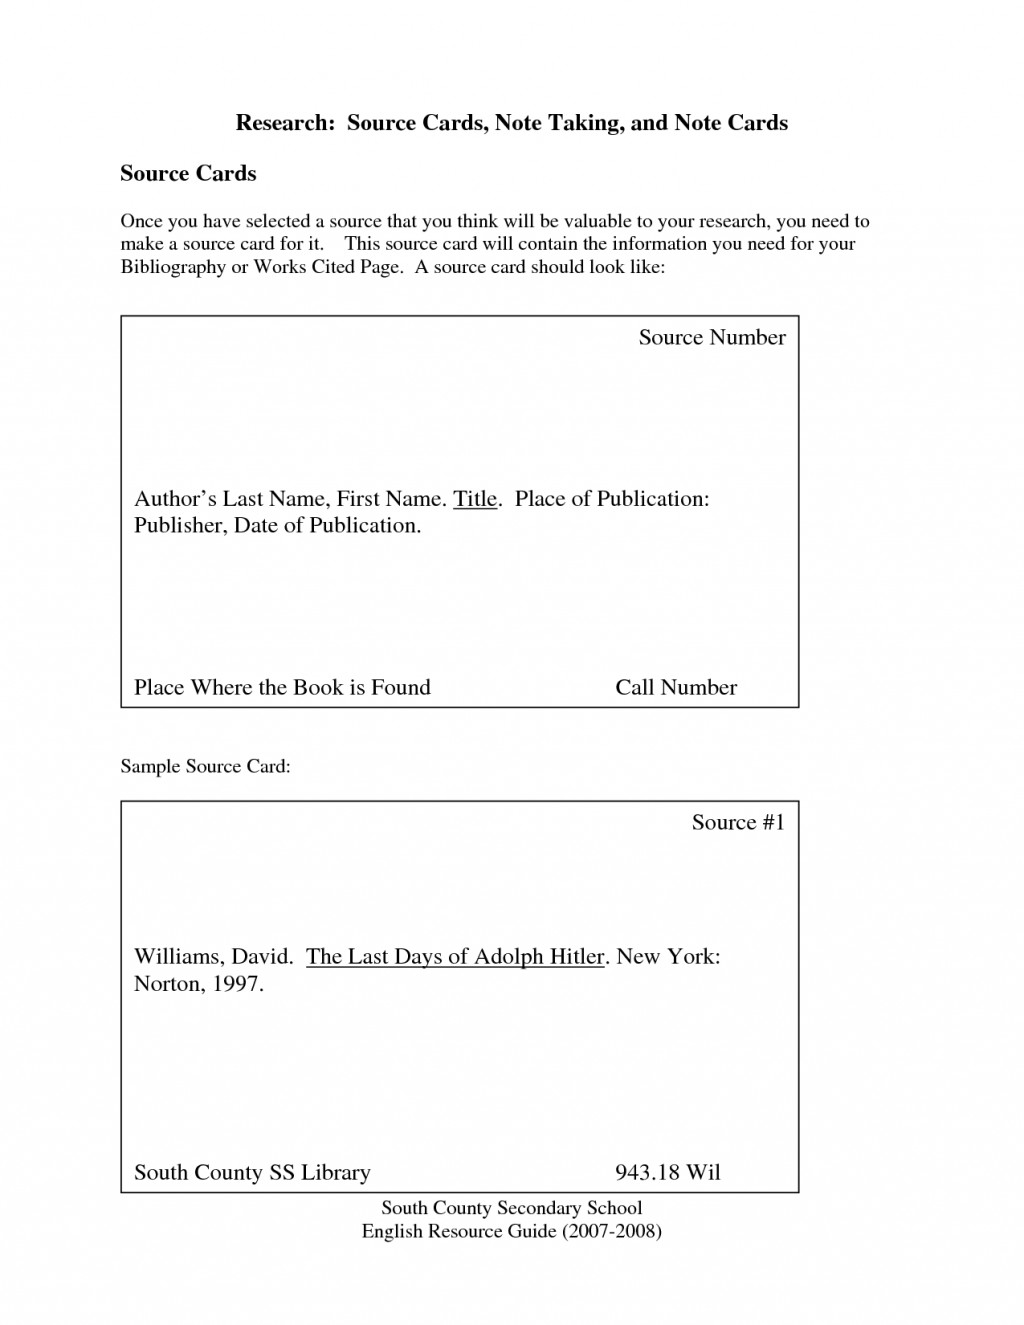 016 Research Paper Note Card Templates 442160 Cards For Excellent Papers Template Notecards Mla Format Large